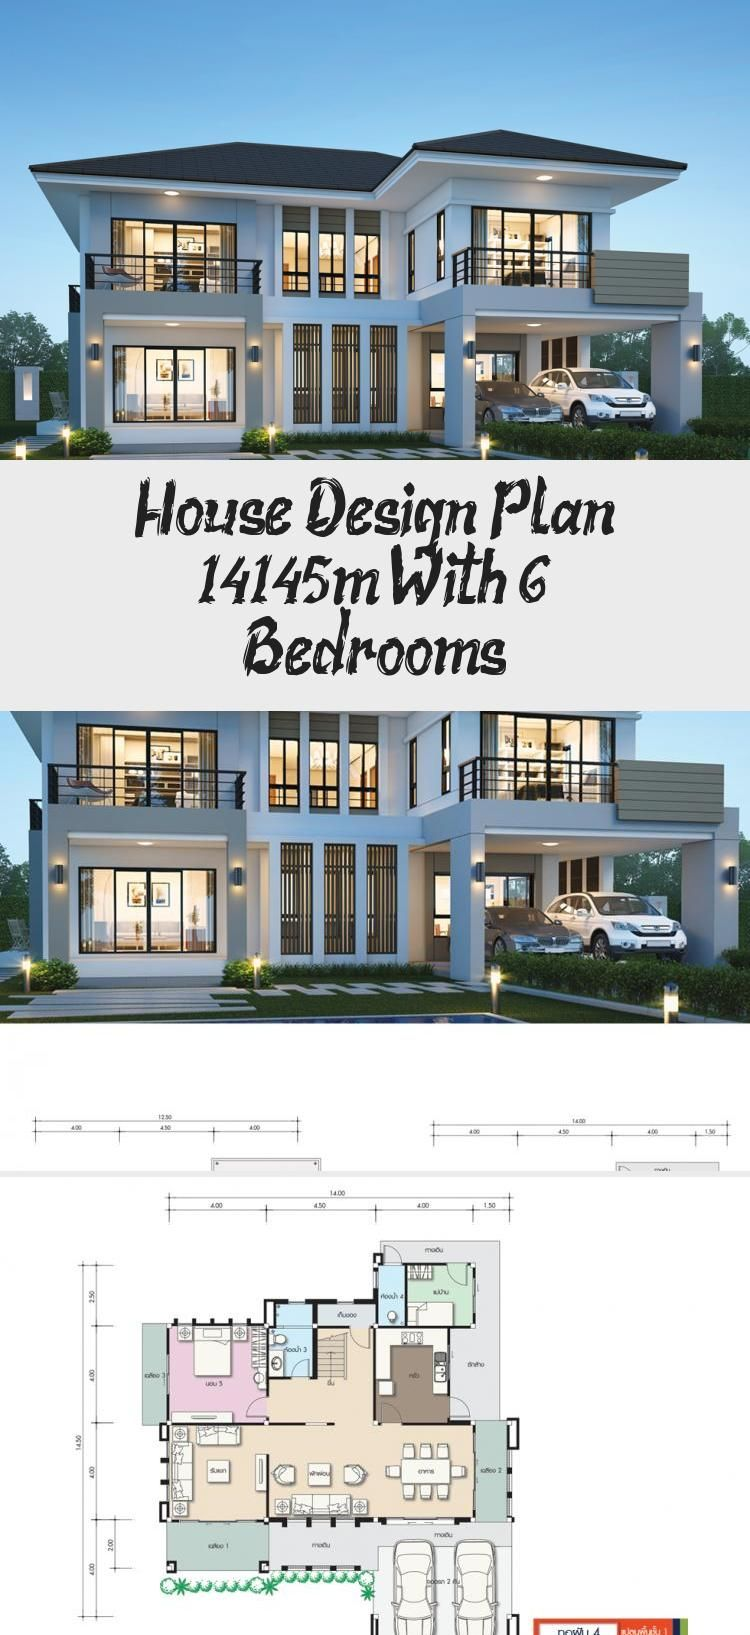 House Design Plan 14x14 5m With 6 Bedrooms Home Design With Plansearch Houseplansindianstyle Housepla In 2020 Unique House Plans Home Design Plans Sims House Plans